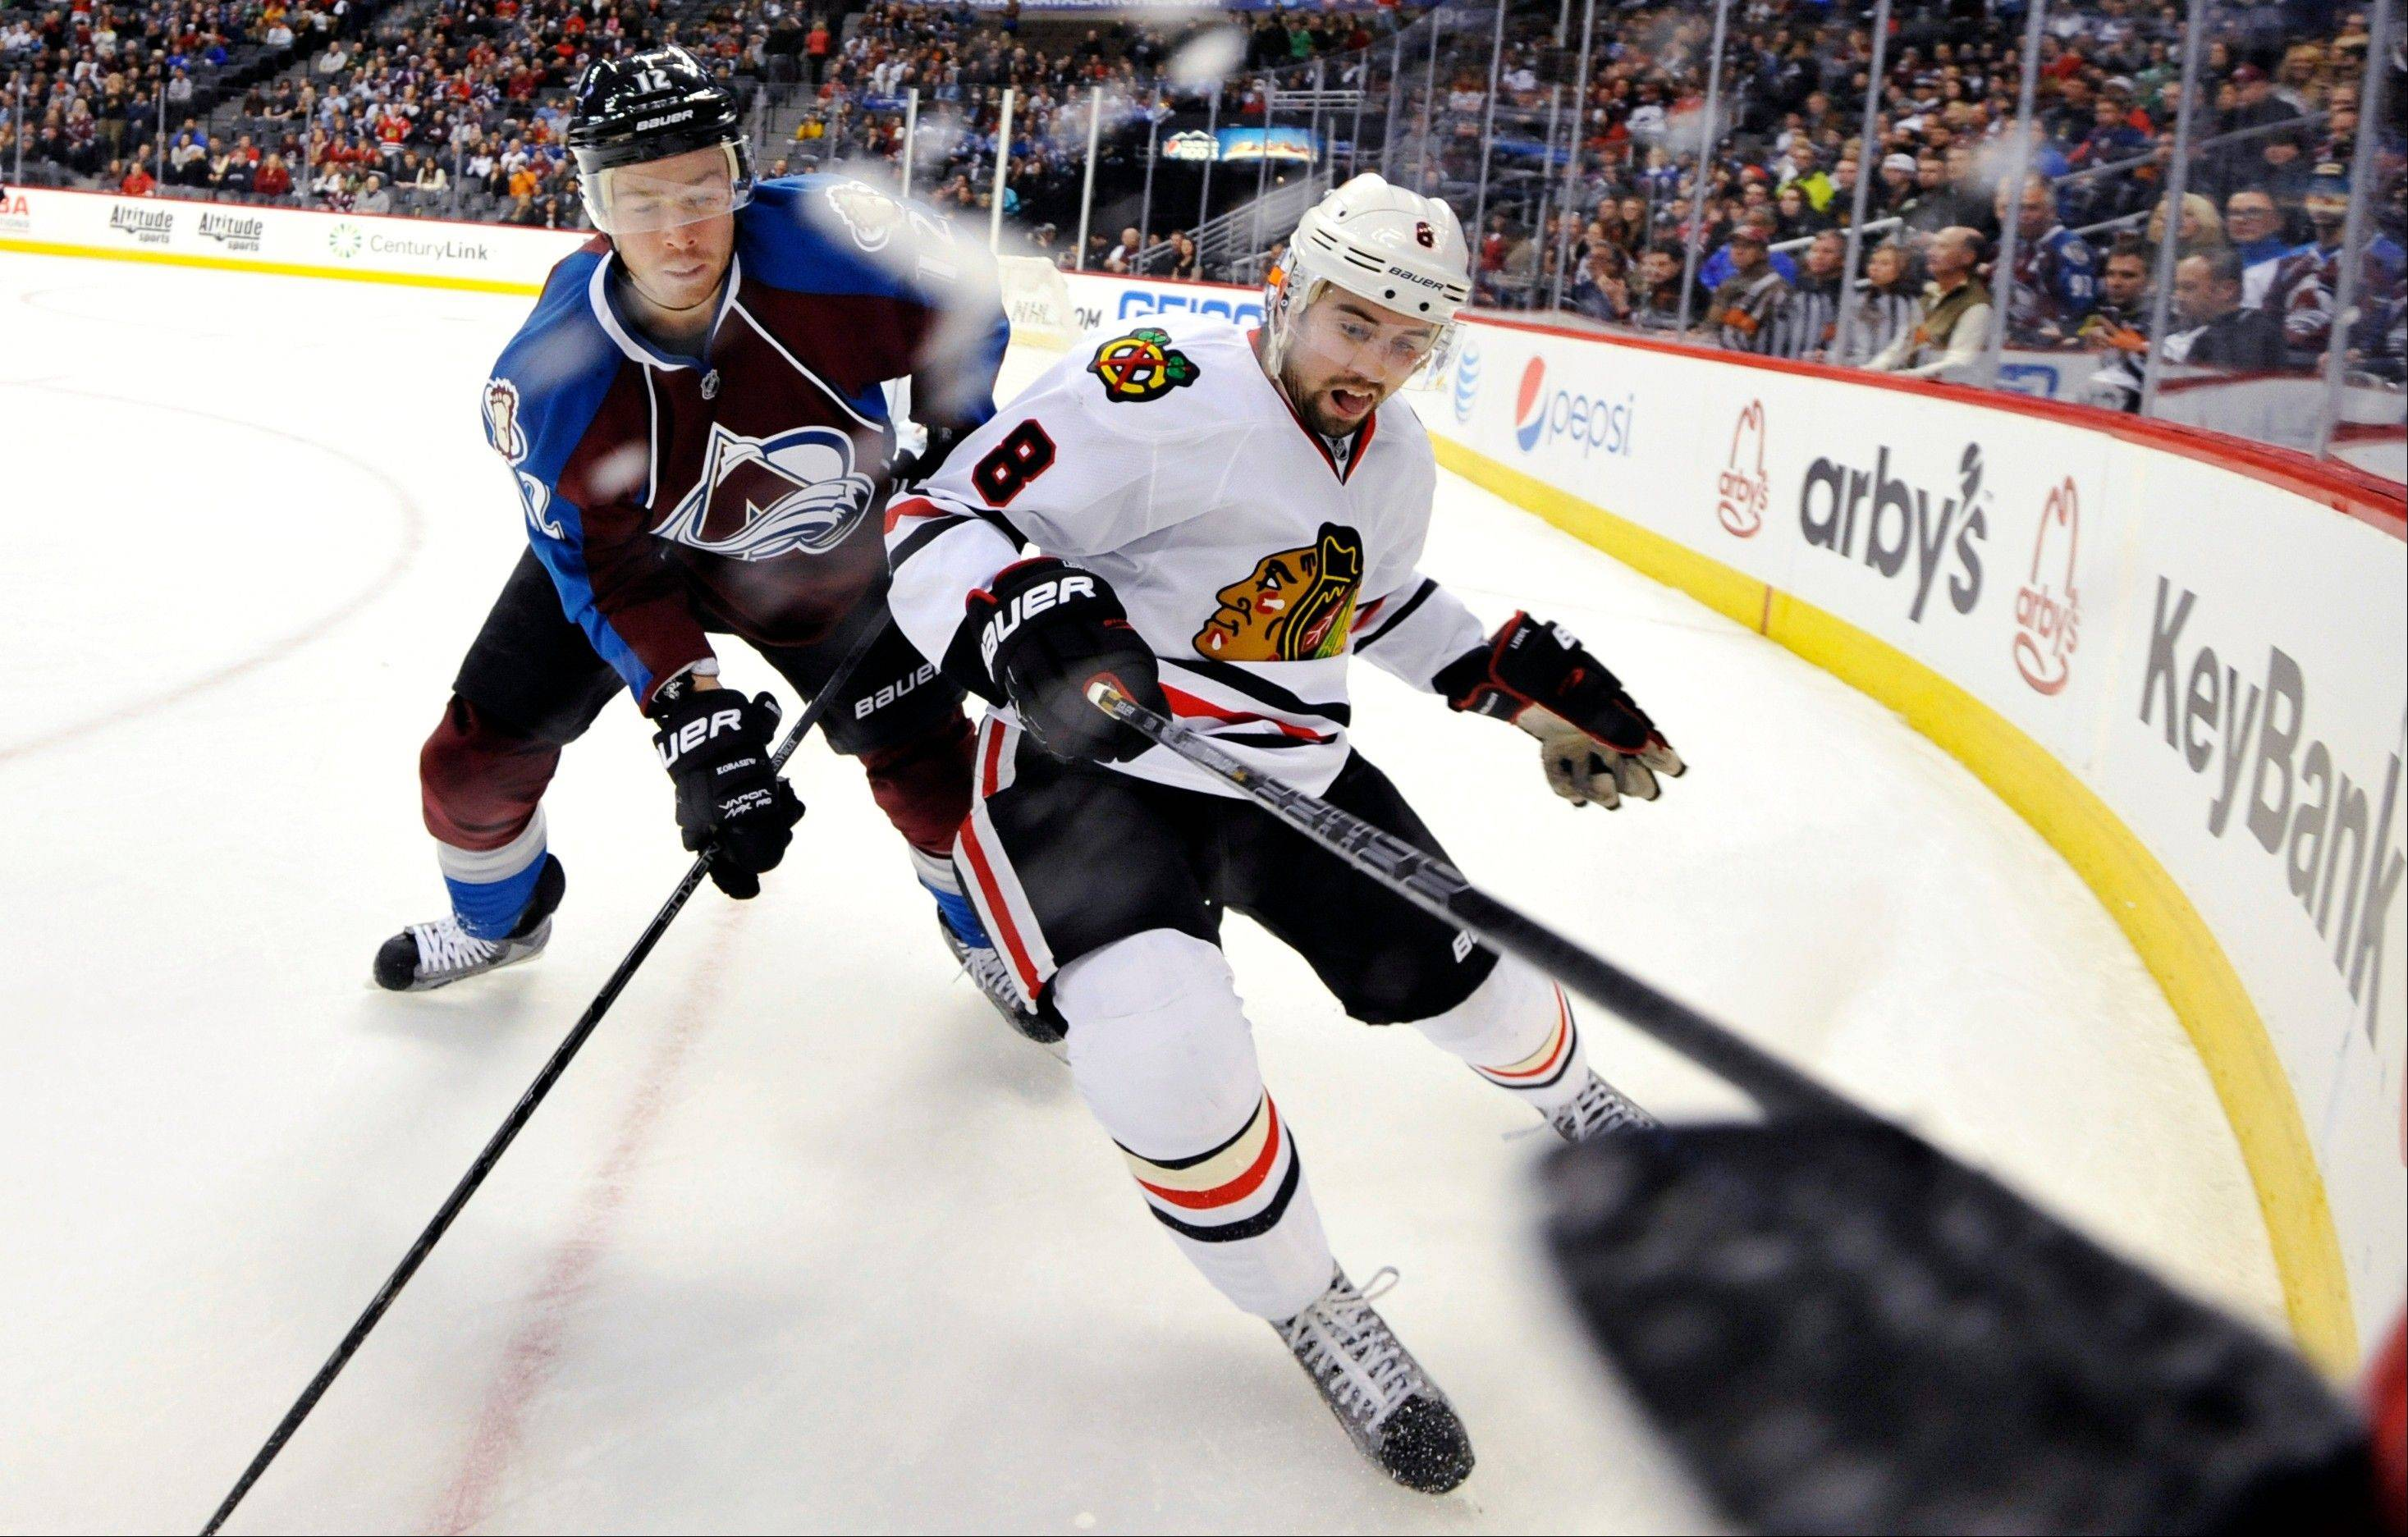 Colorado Avalanche right wing Chuck Kobasew (12) and Chicago Blackhawks defenseman Nick Leddy (8) chase a puck into the corner during the third period of an NHL hockey game, Monday, March 18, 2013, in Denver. Chicago won 5-2.